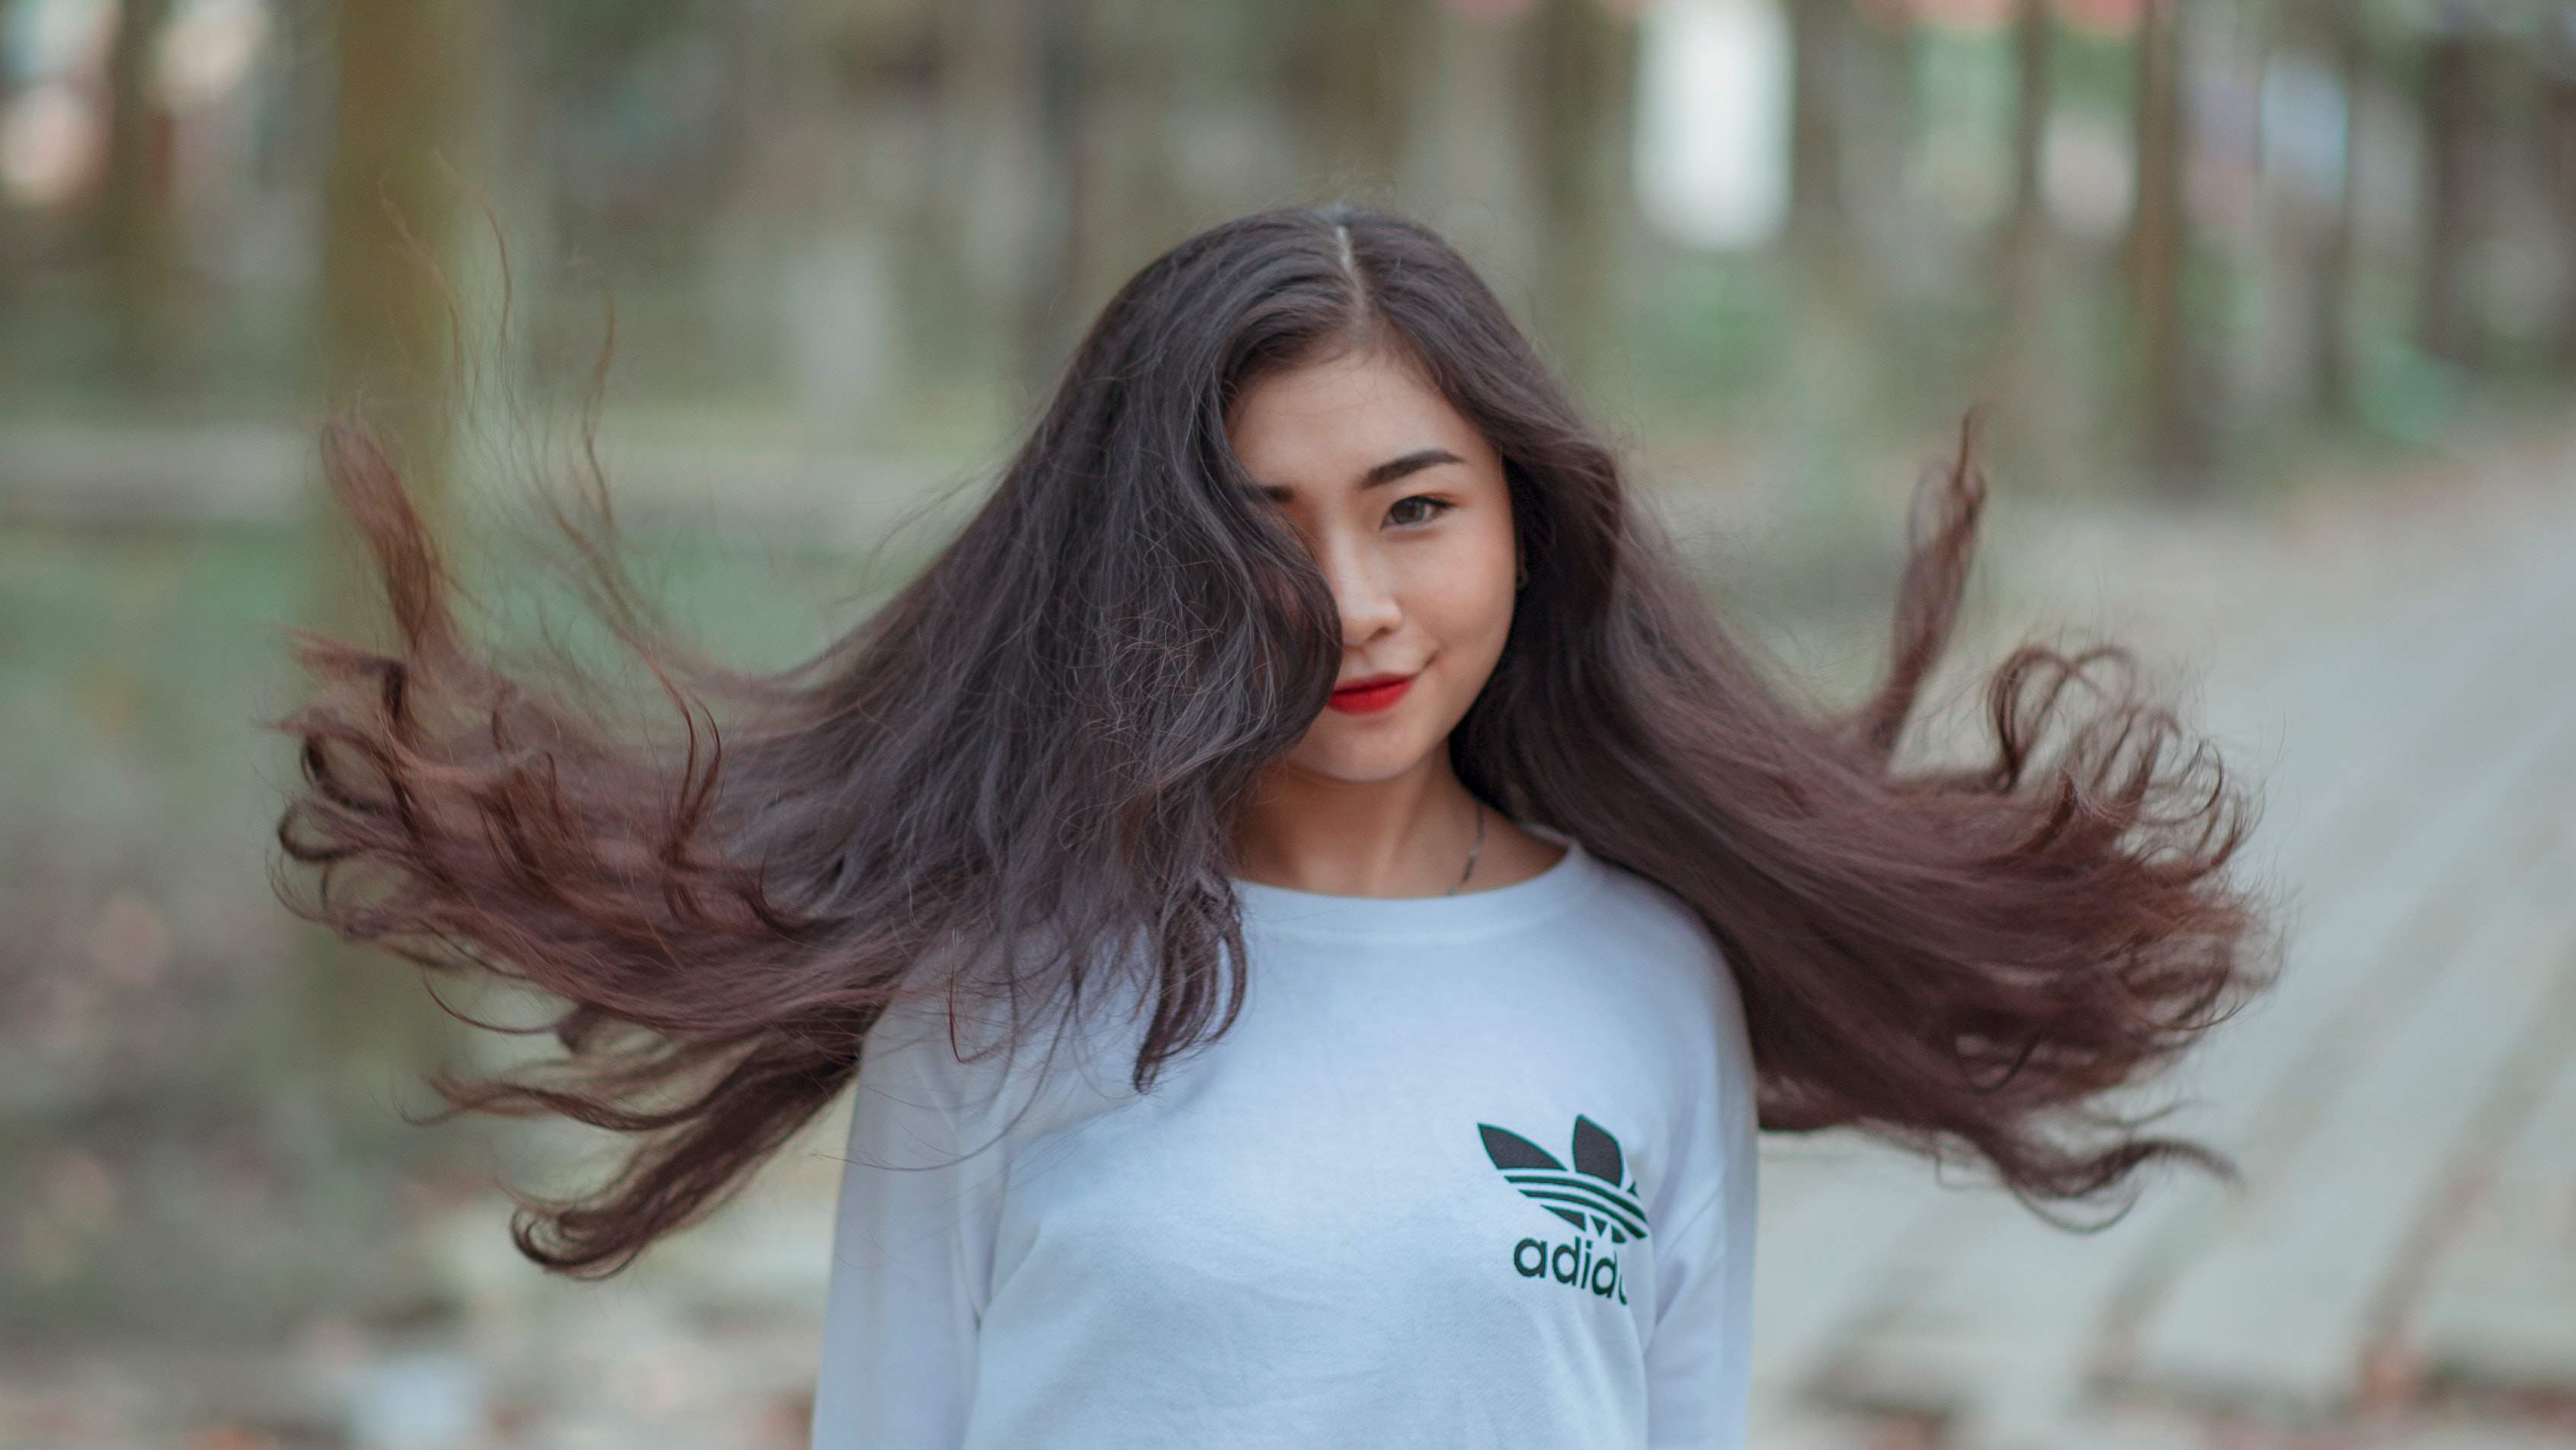 Woman with long hair waving on air and wearing white adidas shirt photo